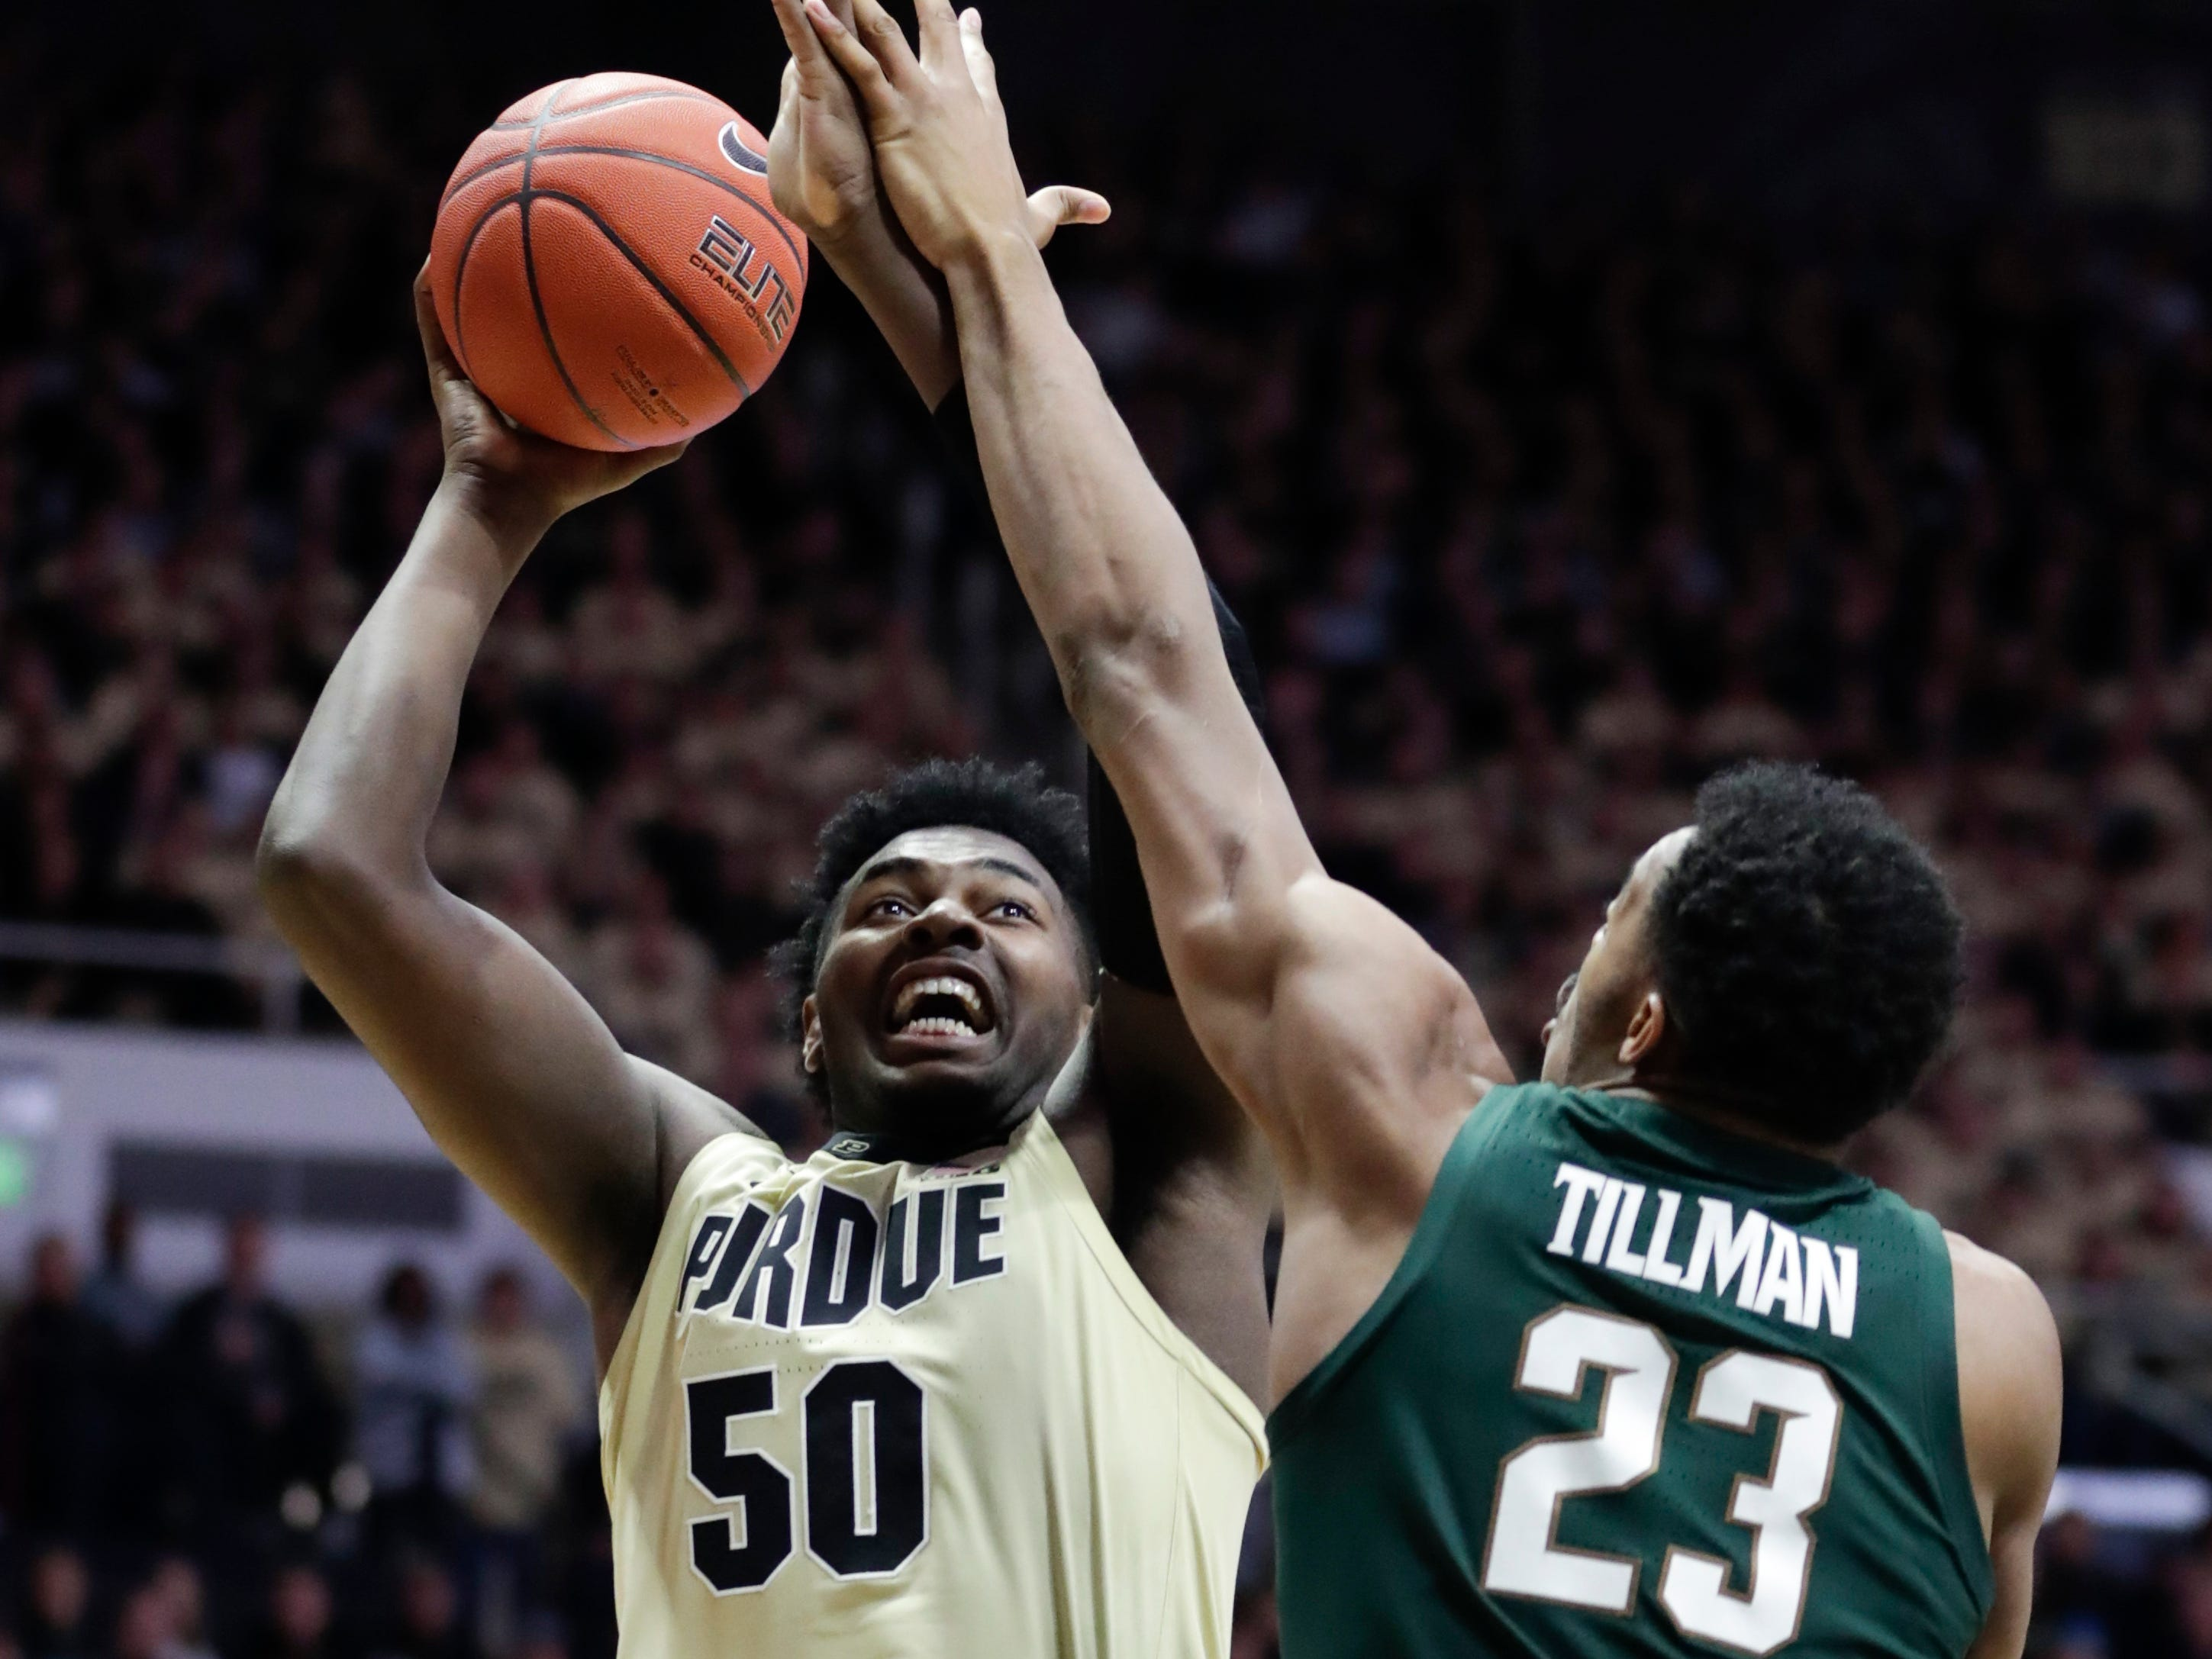 Trevion Williams, 6-9 forward, freshman Purdue (Detroit Henry Ford Academy): Williams started eight games for the Big Ten regular-season co-champion, averaging 5.5 points and 3.9 rebounds while shooting 55.7 percent from the floor. He had a pair of double-doubles.